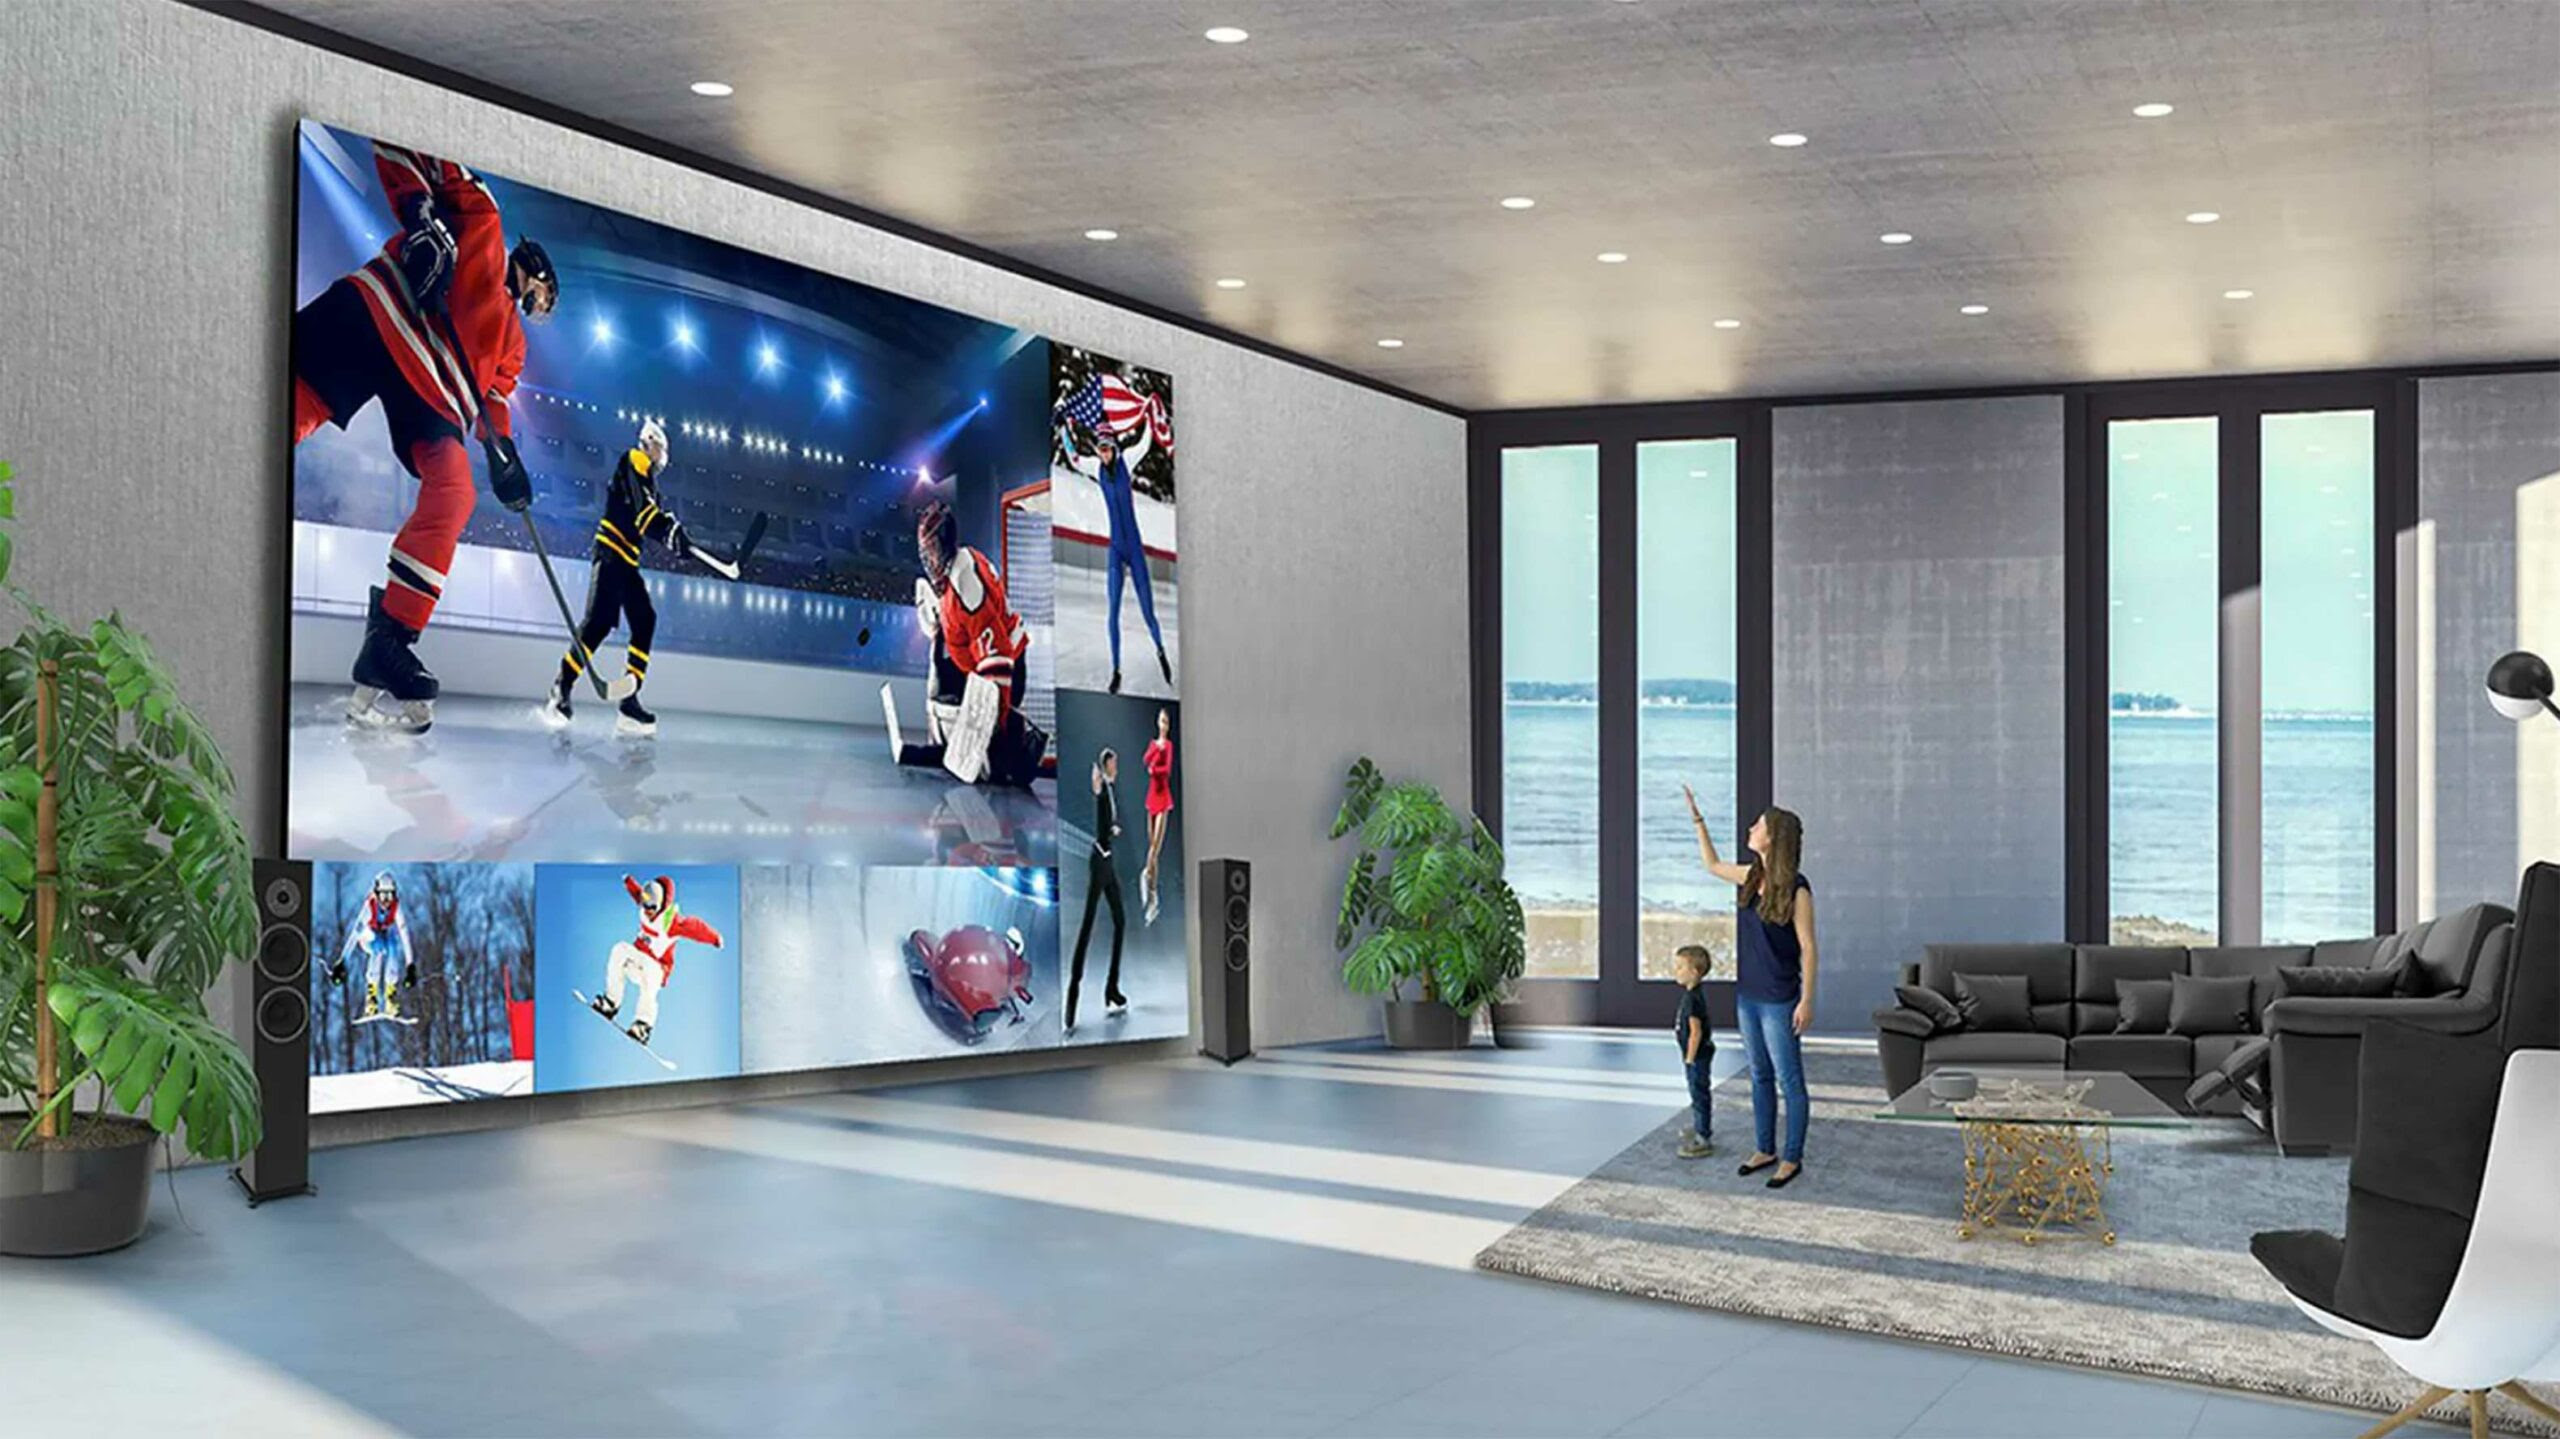 LG unveils TV that comes in at 335 inches and costs over $2 million CAD